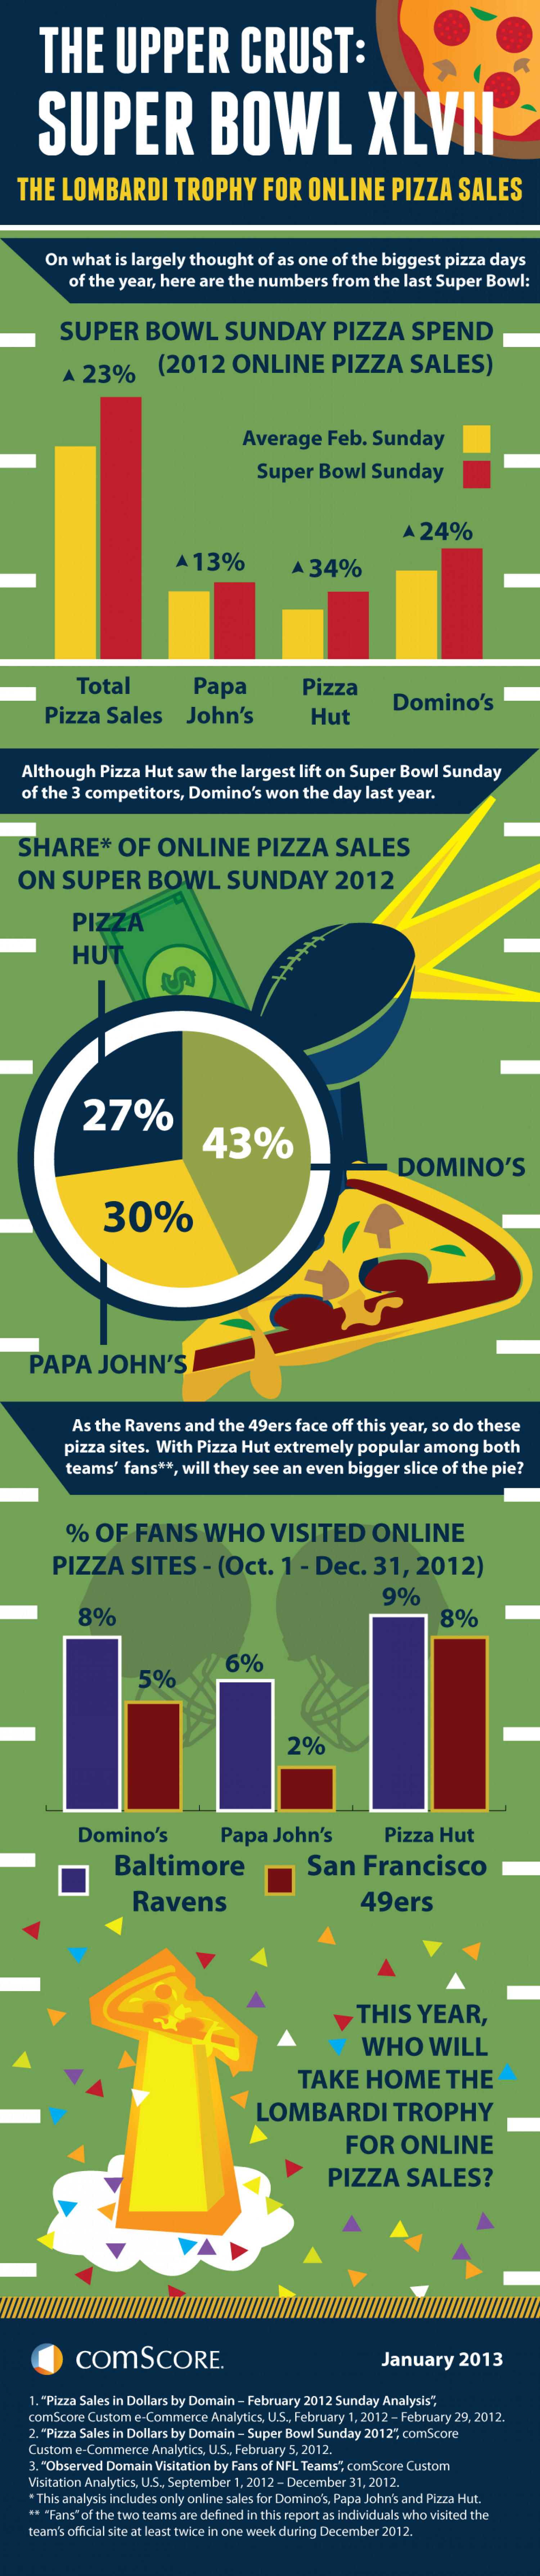 Super Bowl Sunday: Who Will Win the Lombardi Trophy for Online Pizza Sales? Infographic